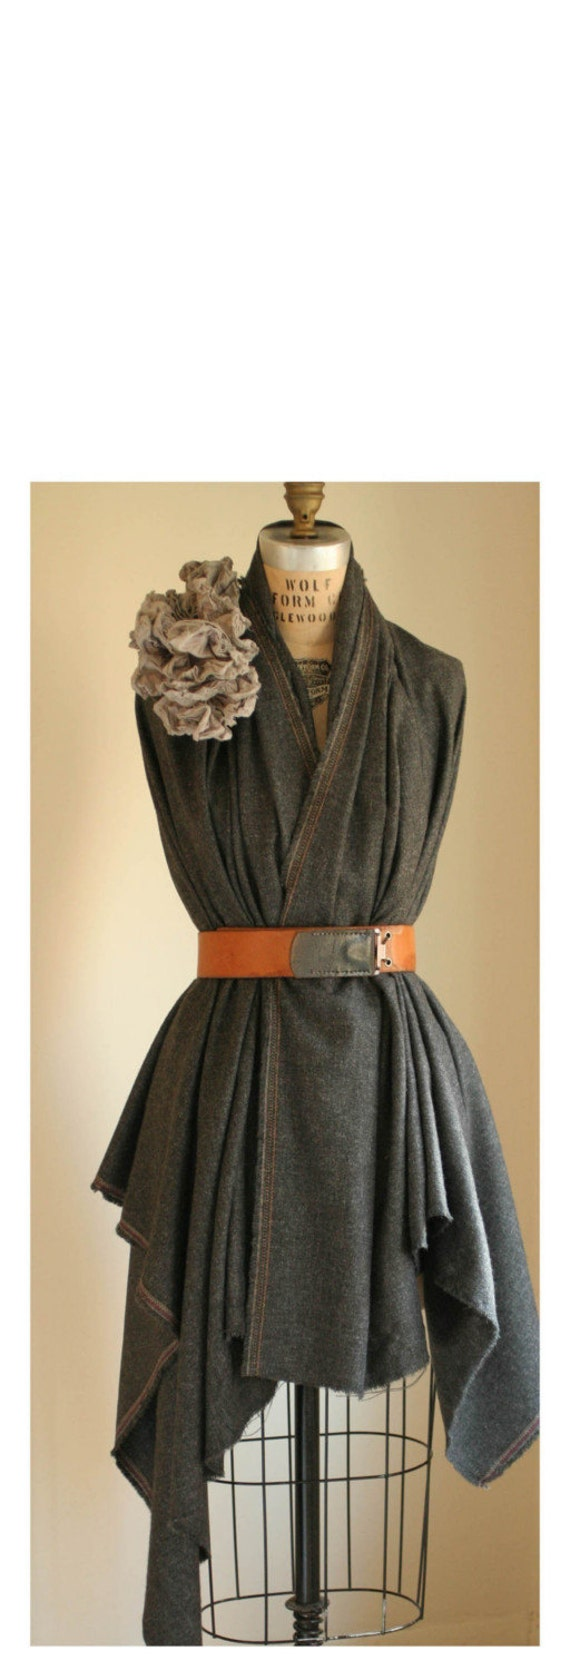 artLAB's Oversized Wool Wrap No.4 Charcoal Gray